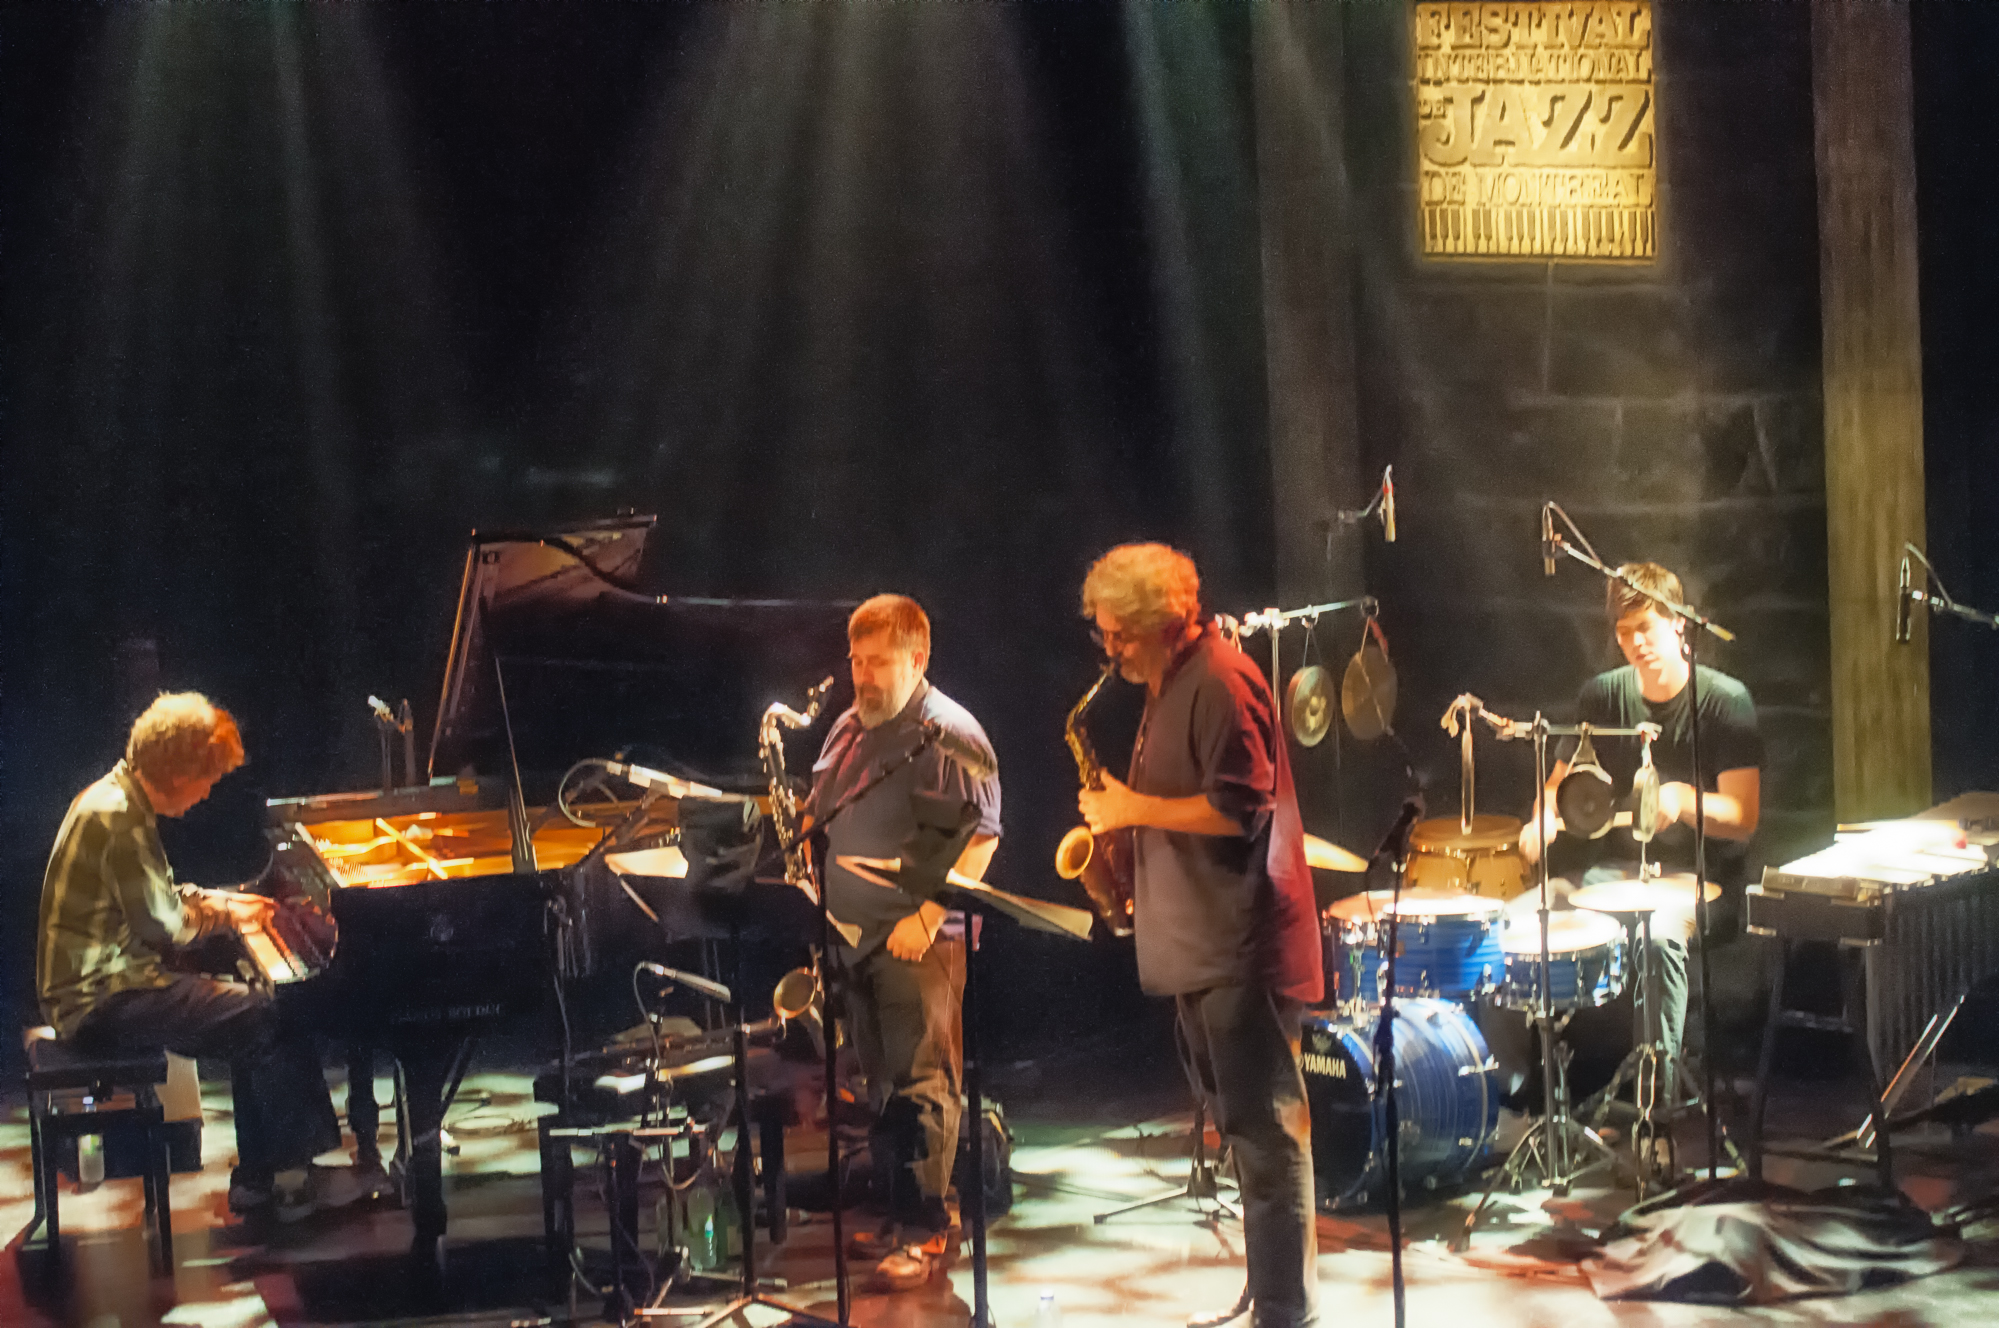 Matt mitchell, oscar noriega, tim berne and ches smith with snakeoil at the montreal international jazz festival 2013